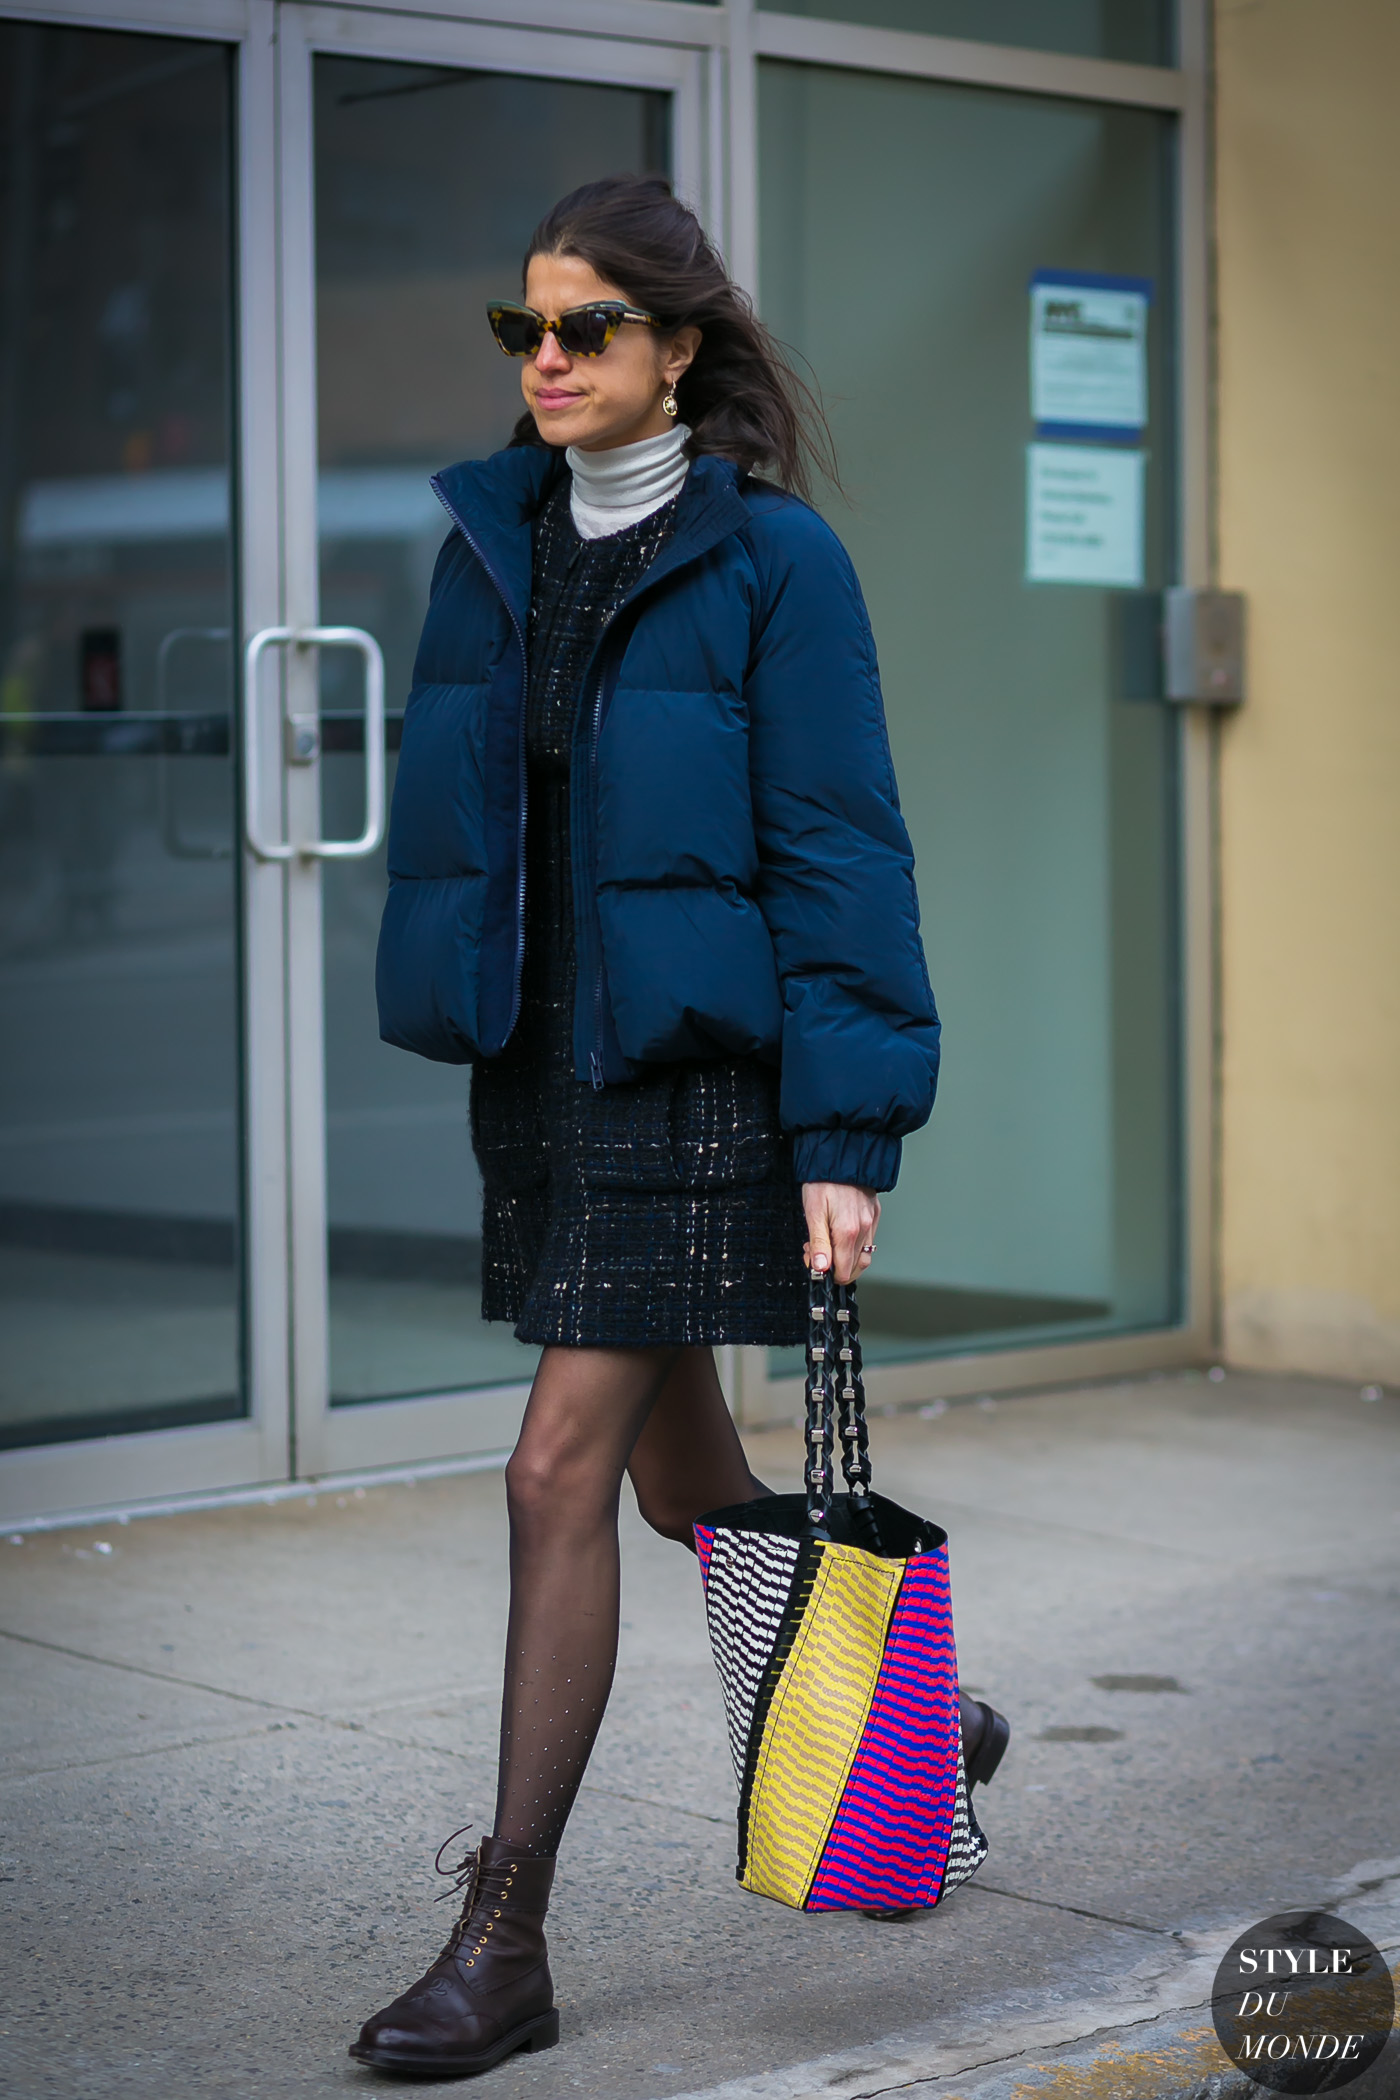 Leandra Medine Man Repeller by STYLEDUMONDE Street Style Fashion Photography0E2A5117